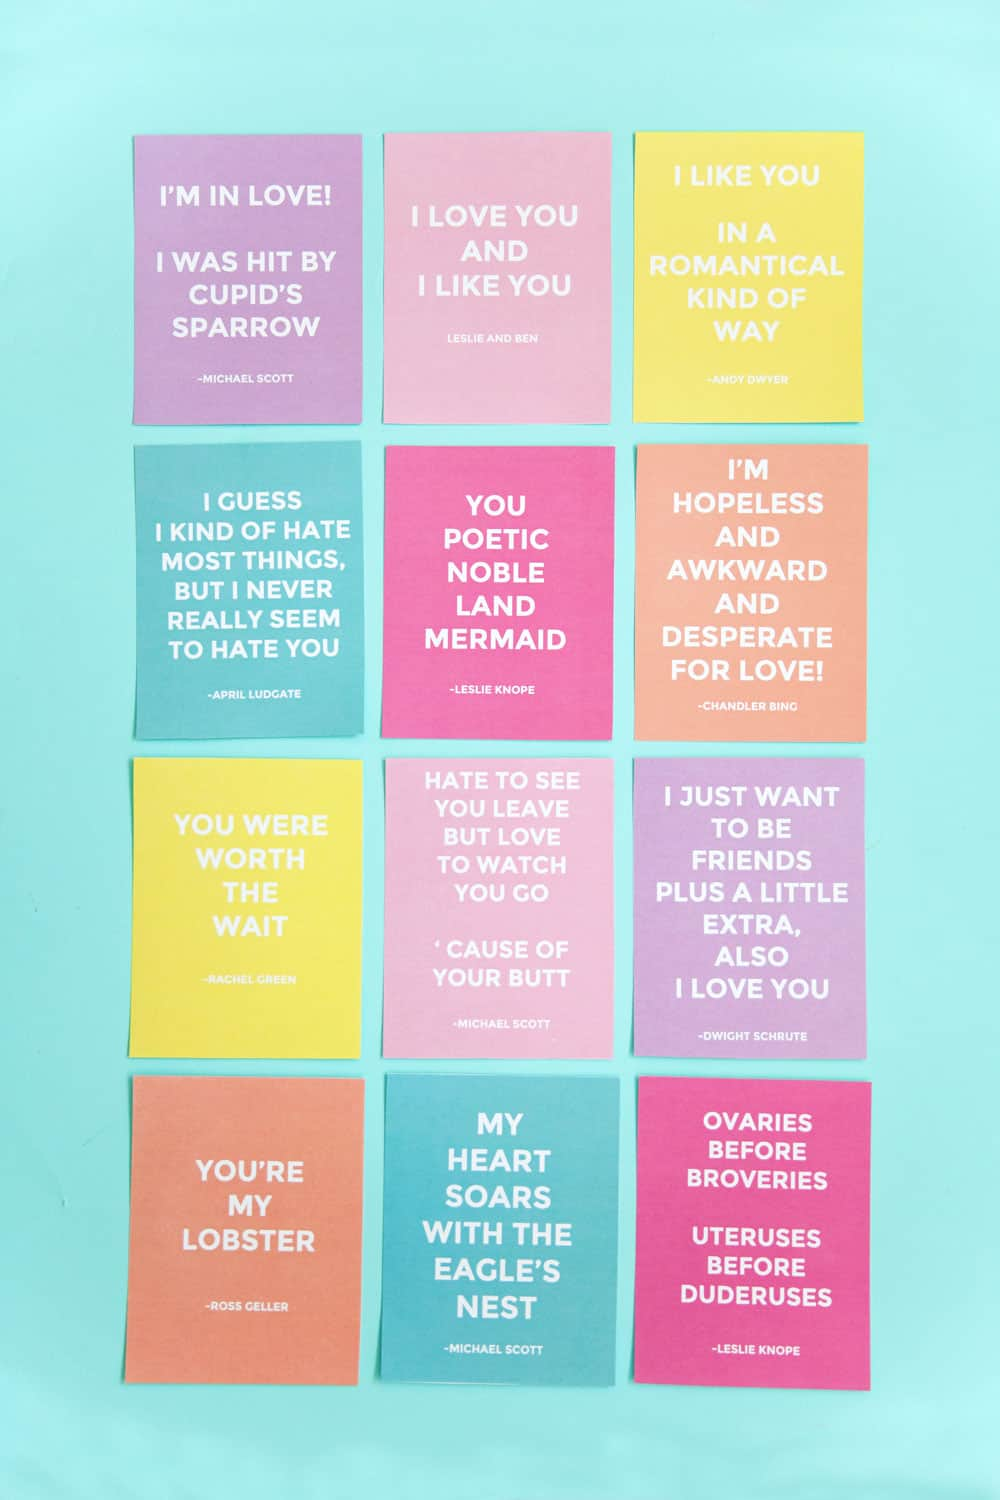 12 different brightly colored printable Valentines cards with funny quotes from TV shows like Friends, The Office, Parks and Rec.